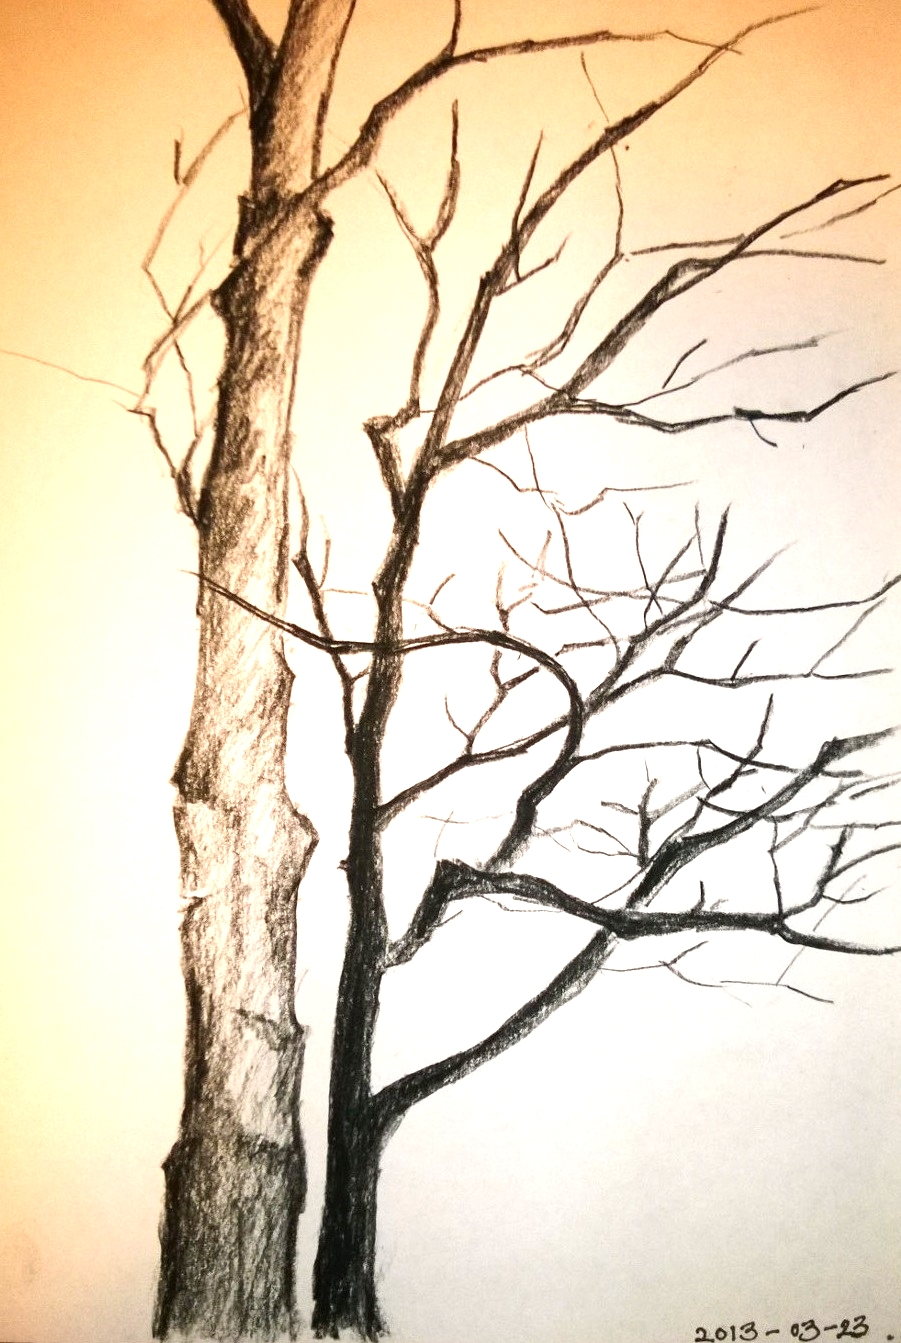 Pair Tree, 11.5 x 8 inches